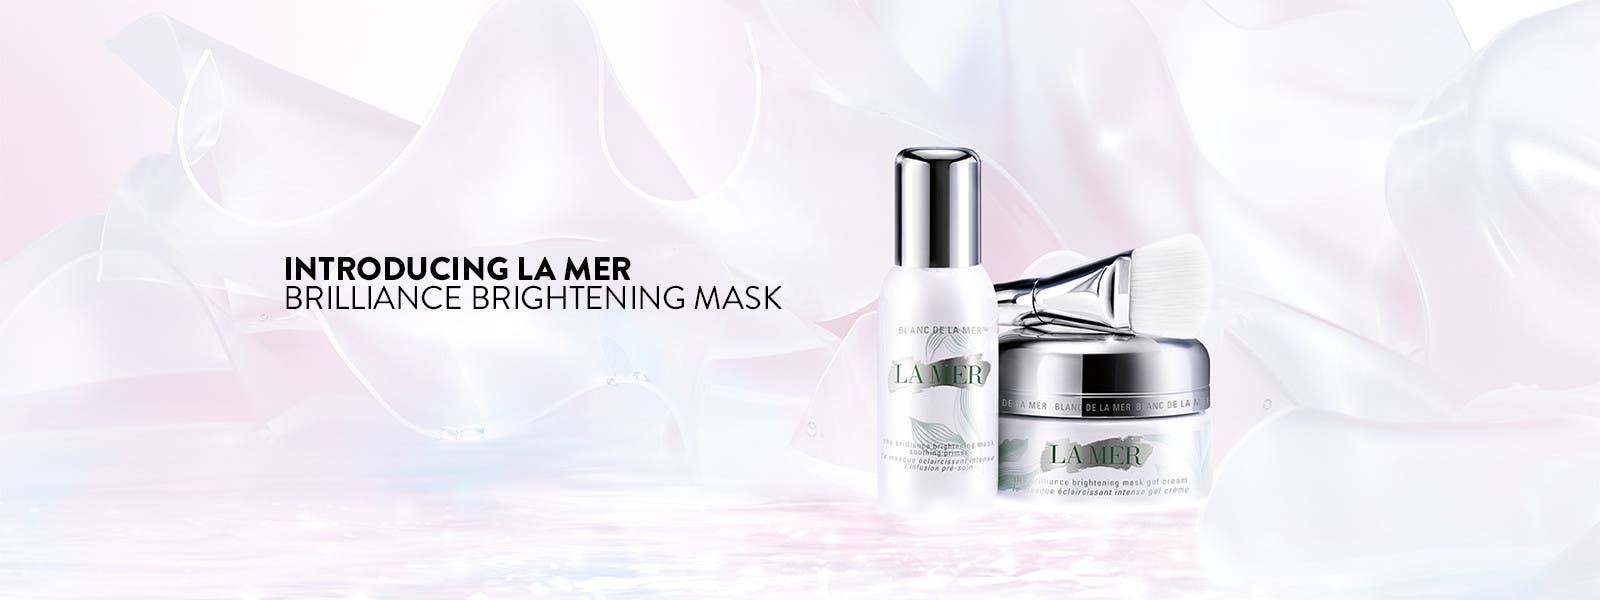 Introducing La Mer Brilliance Brightening Mask.